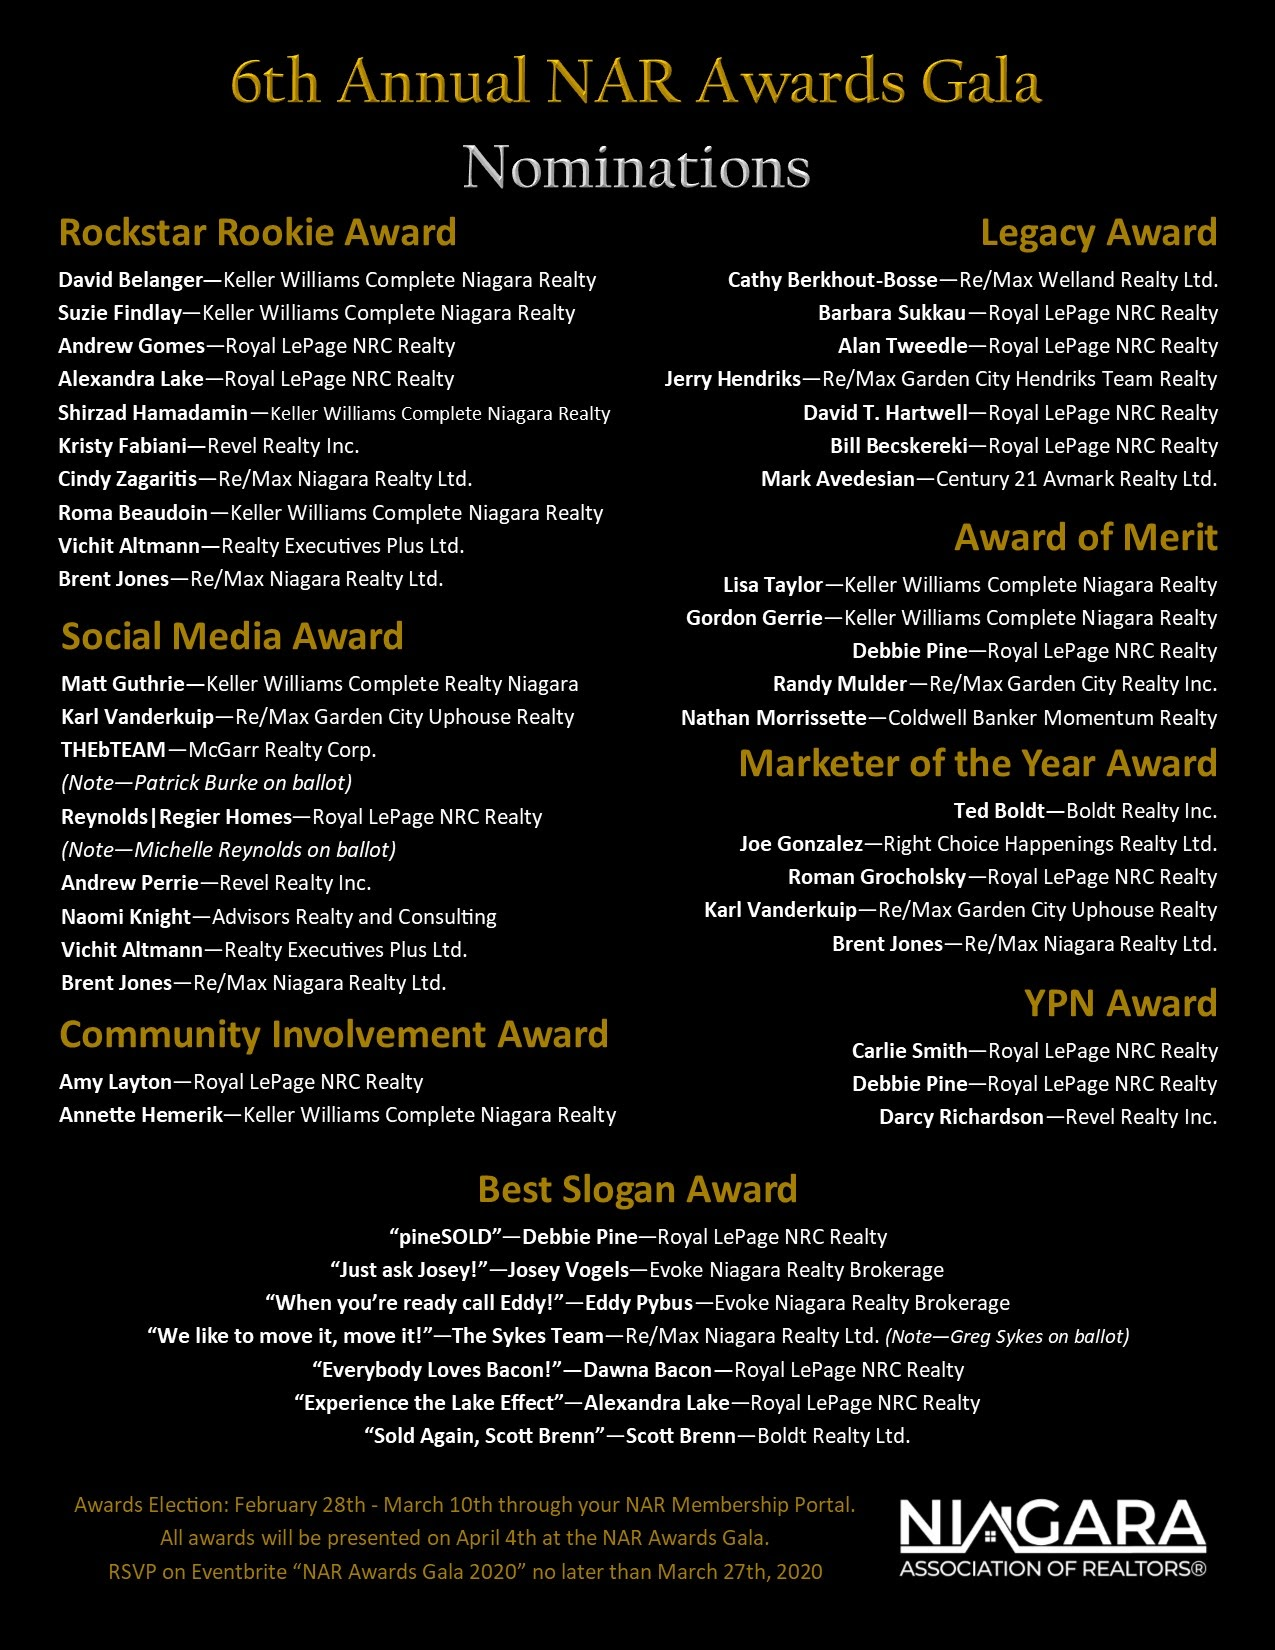 [6th Annual NAR Awards] I Was Nominated in Three Different Categories